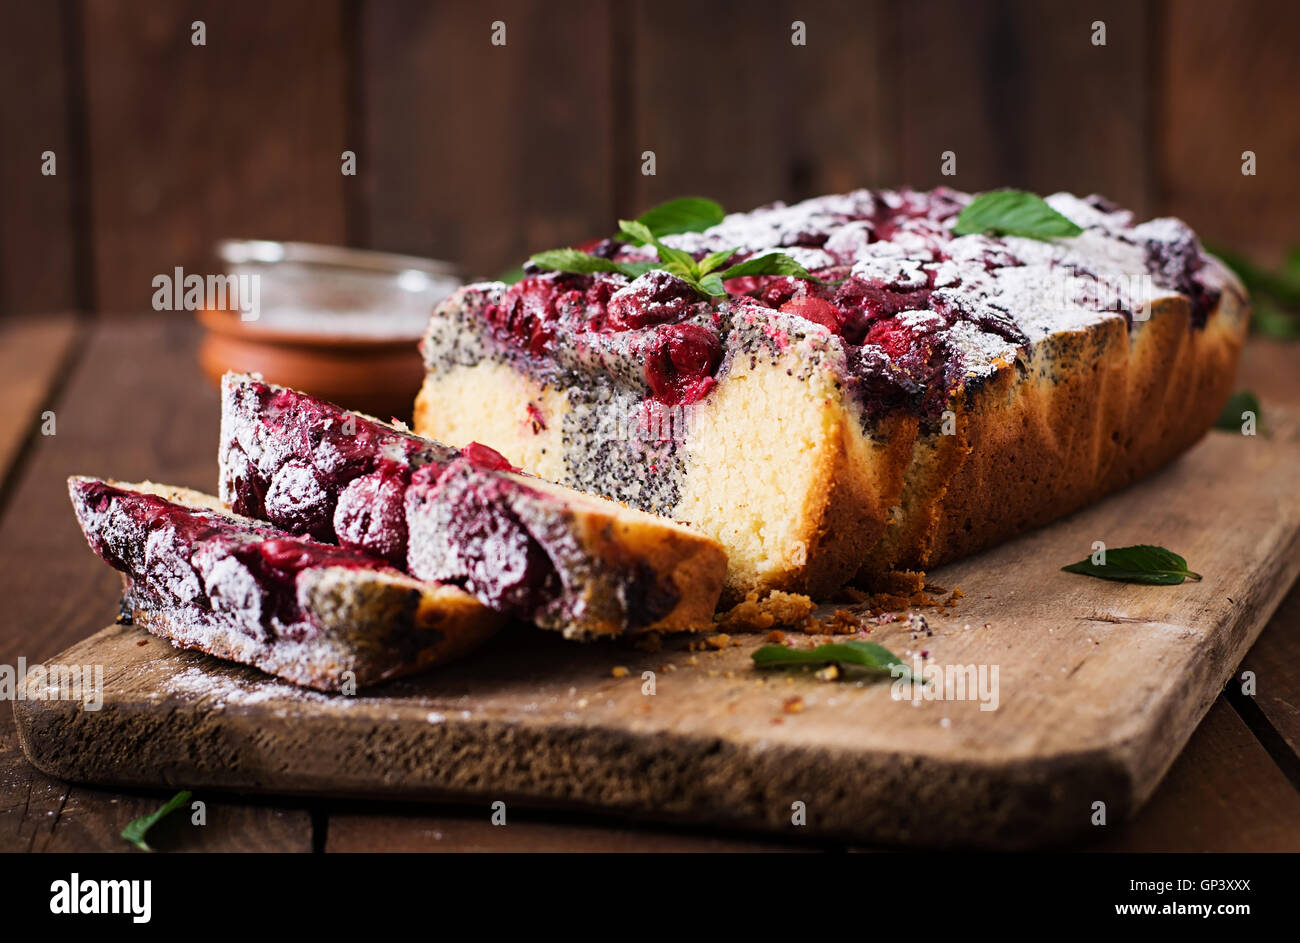 Cherry poppy seed cake dusted with powdered sugar on a wooden table - Stock Image